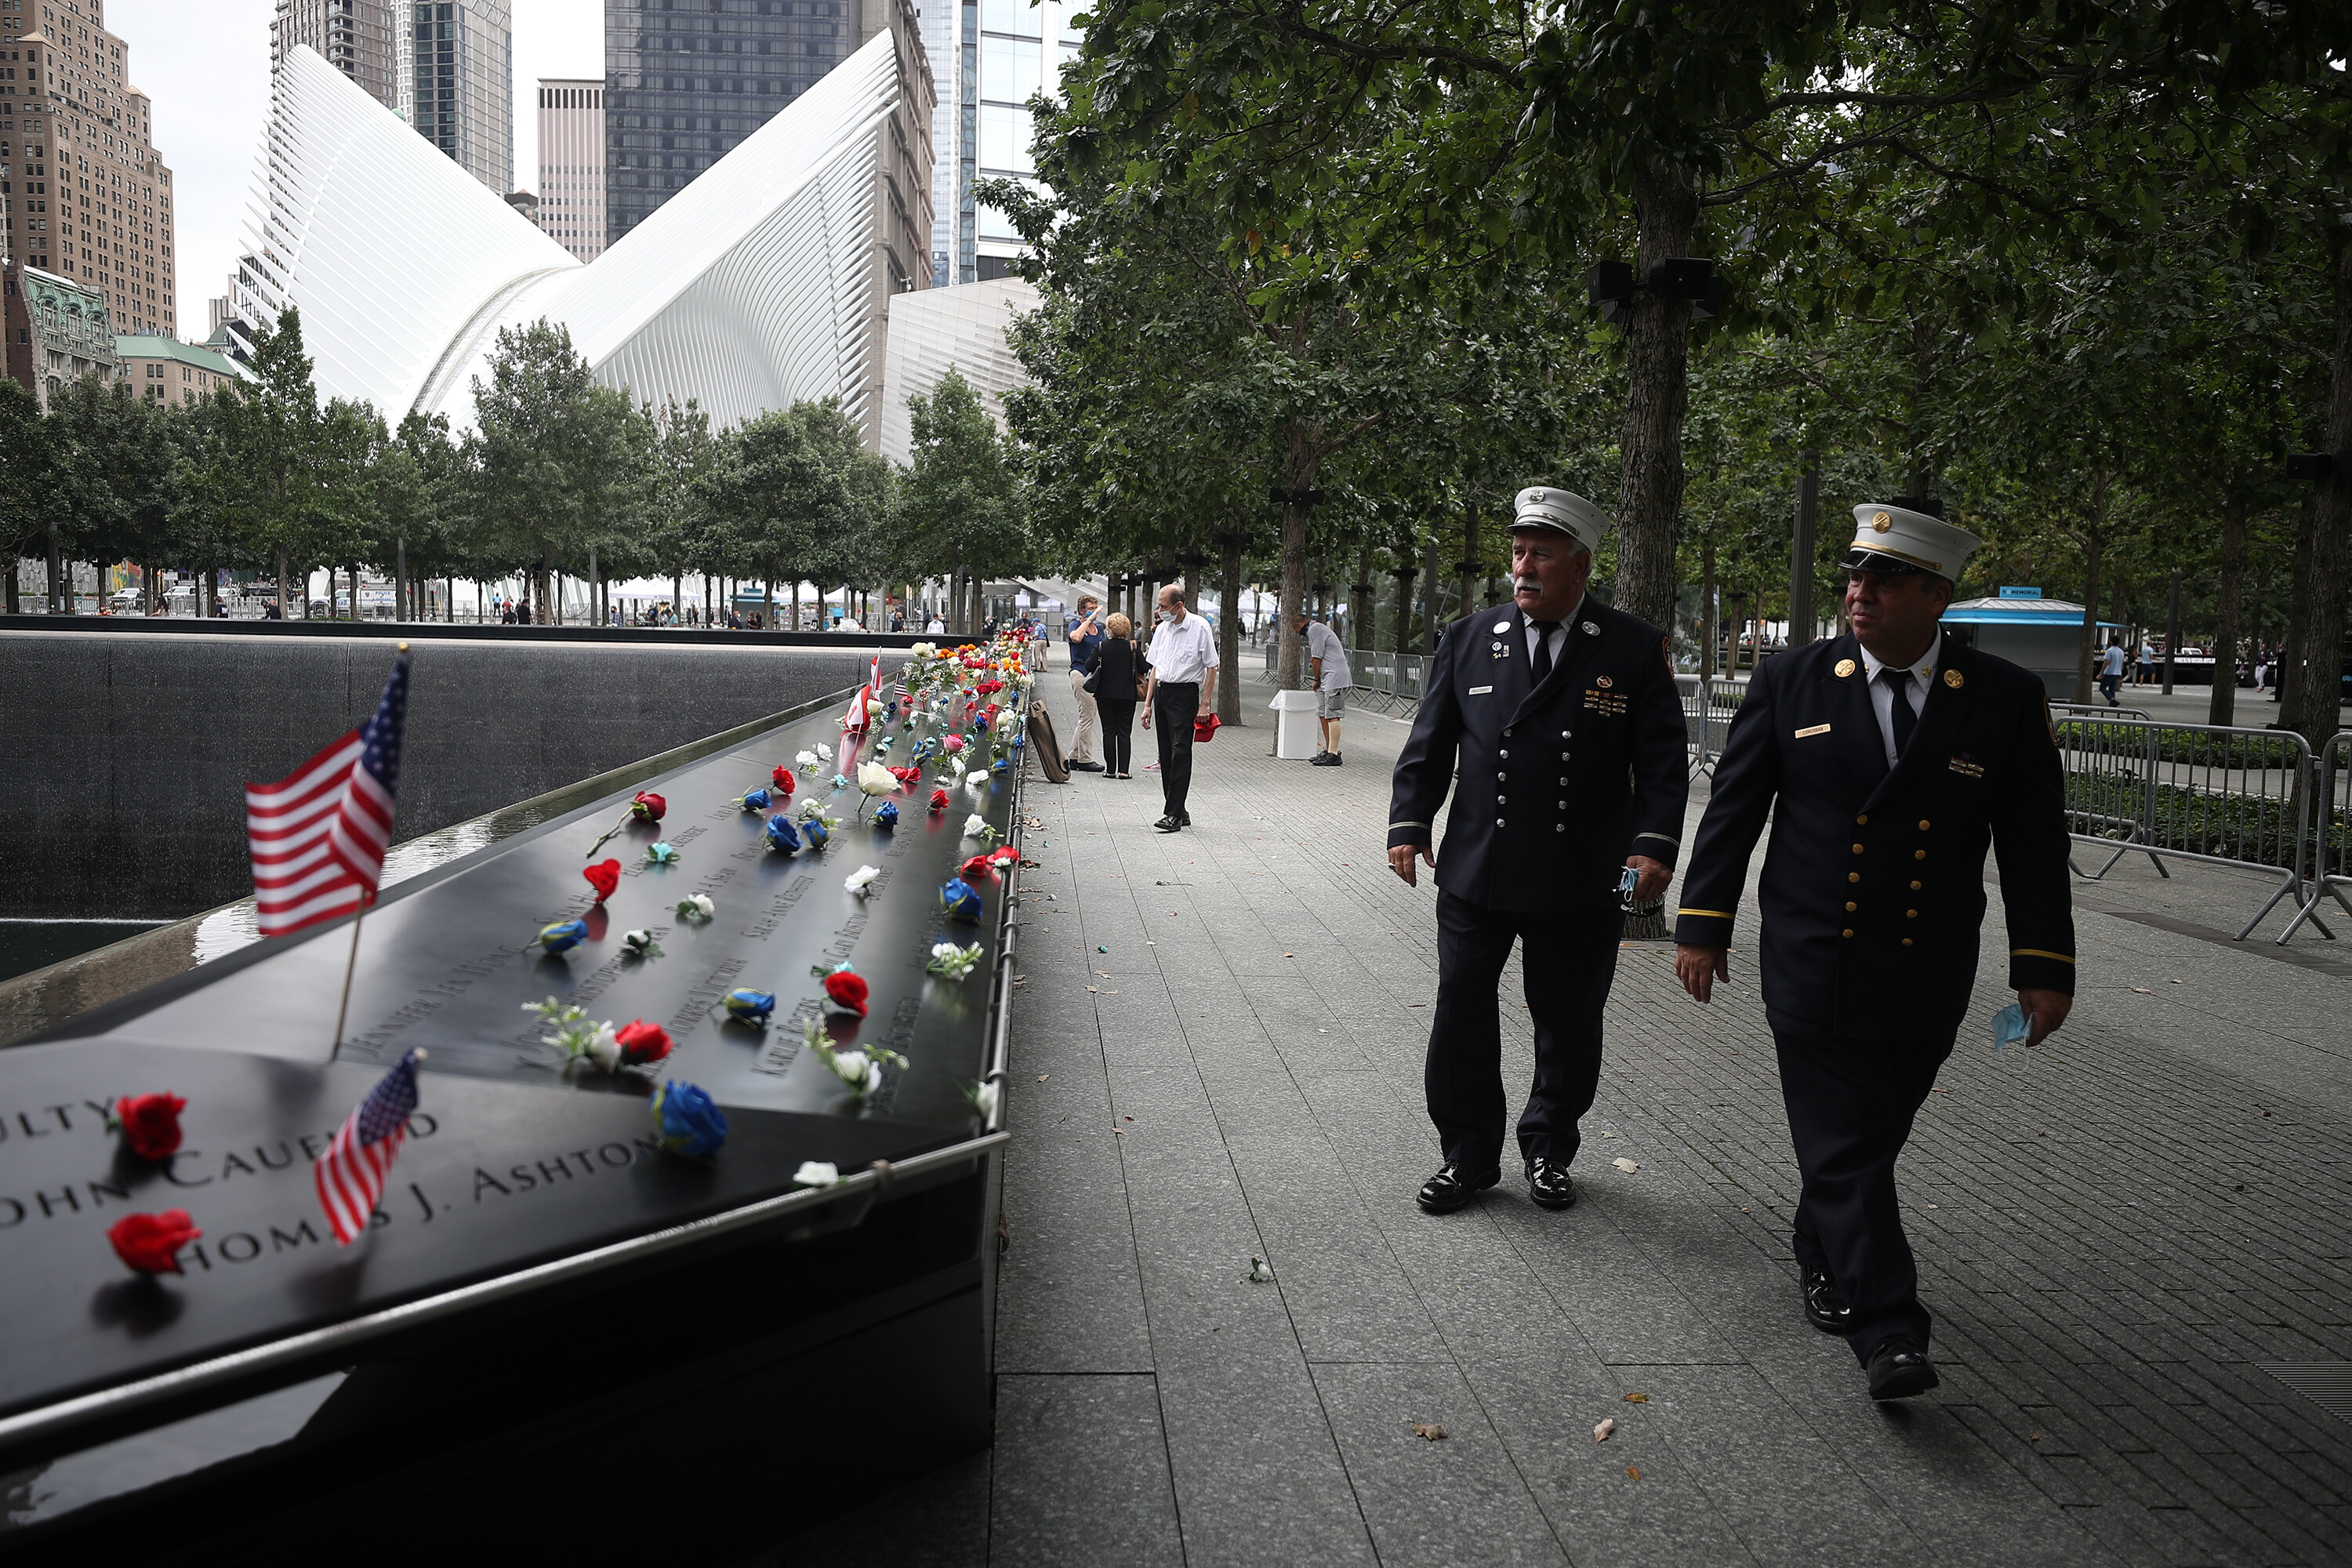 Marking 20 years since 9/11: Media outlets plan special coverage to commemorate deadly attacks